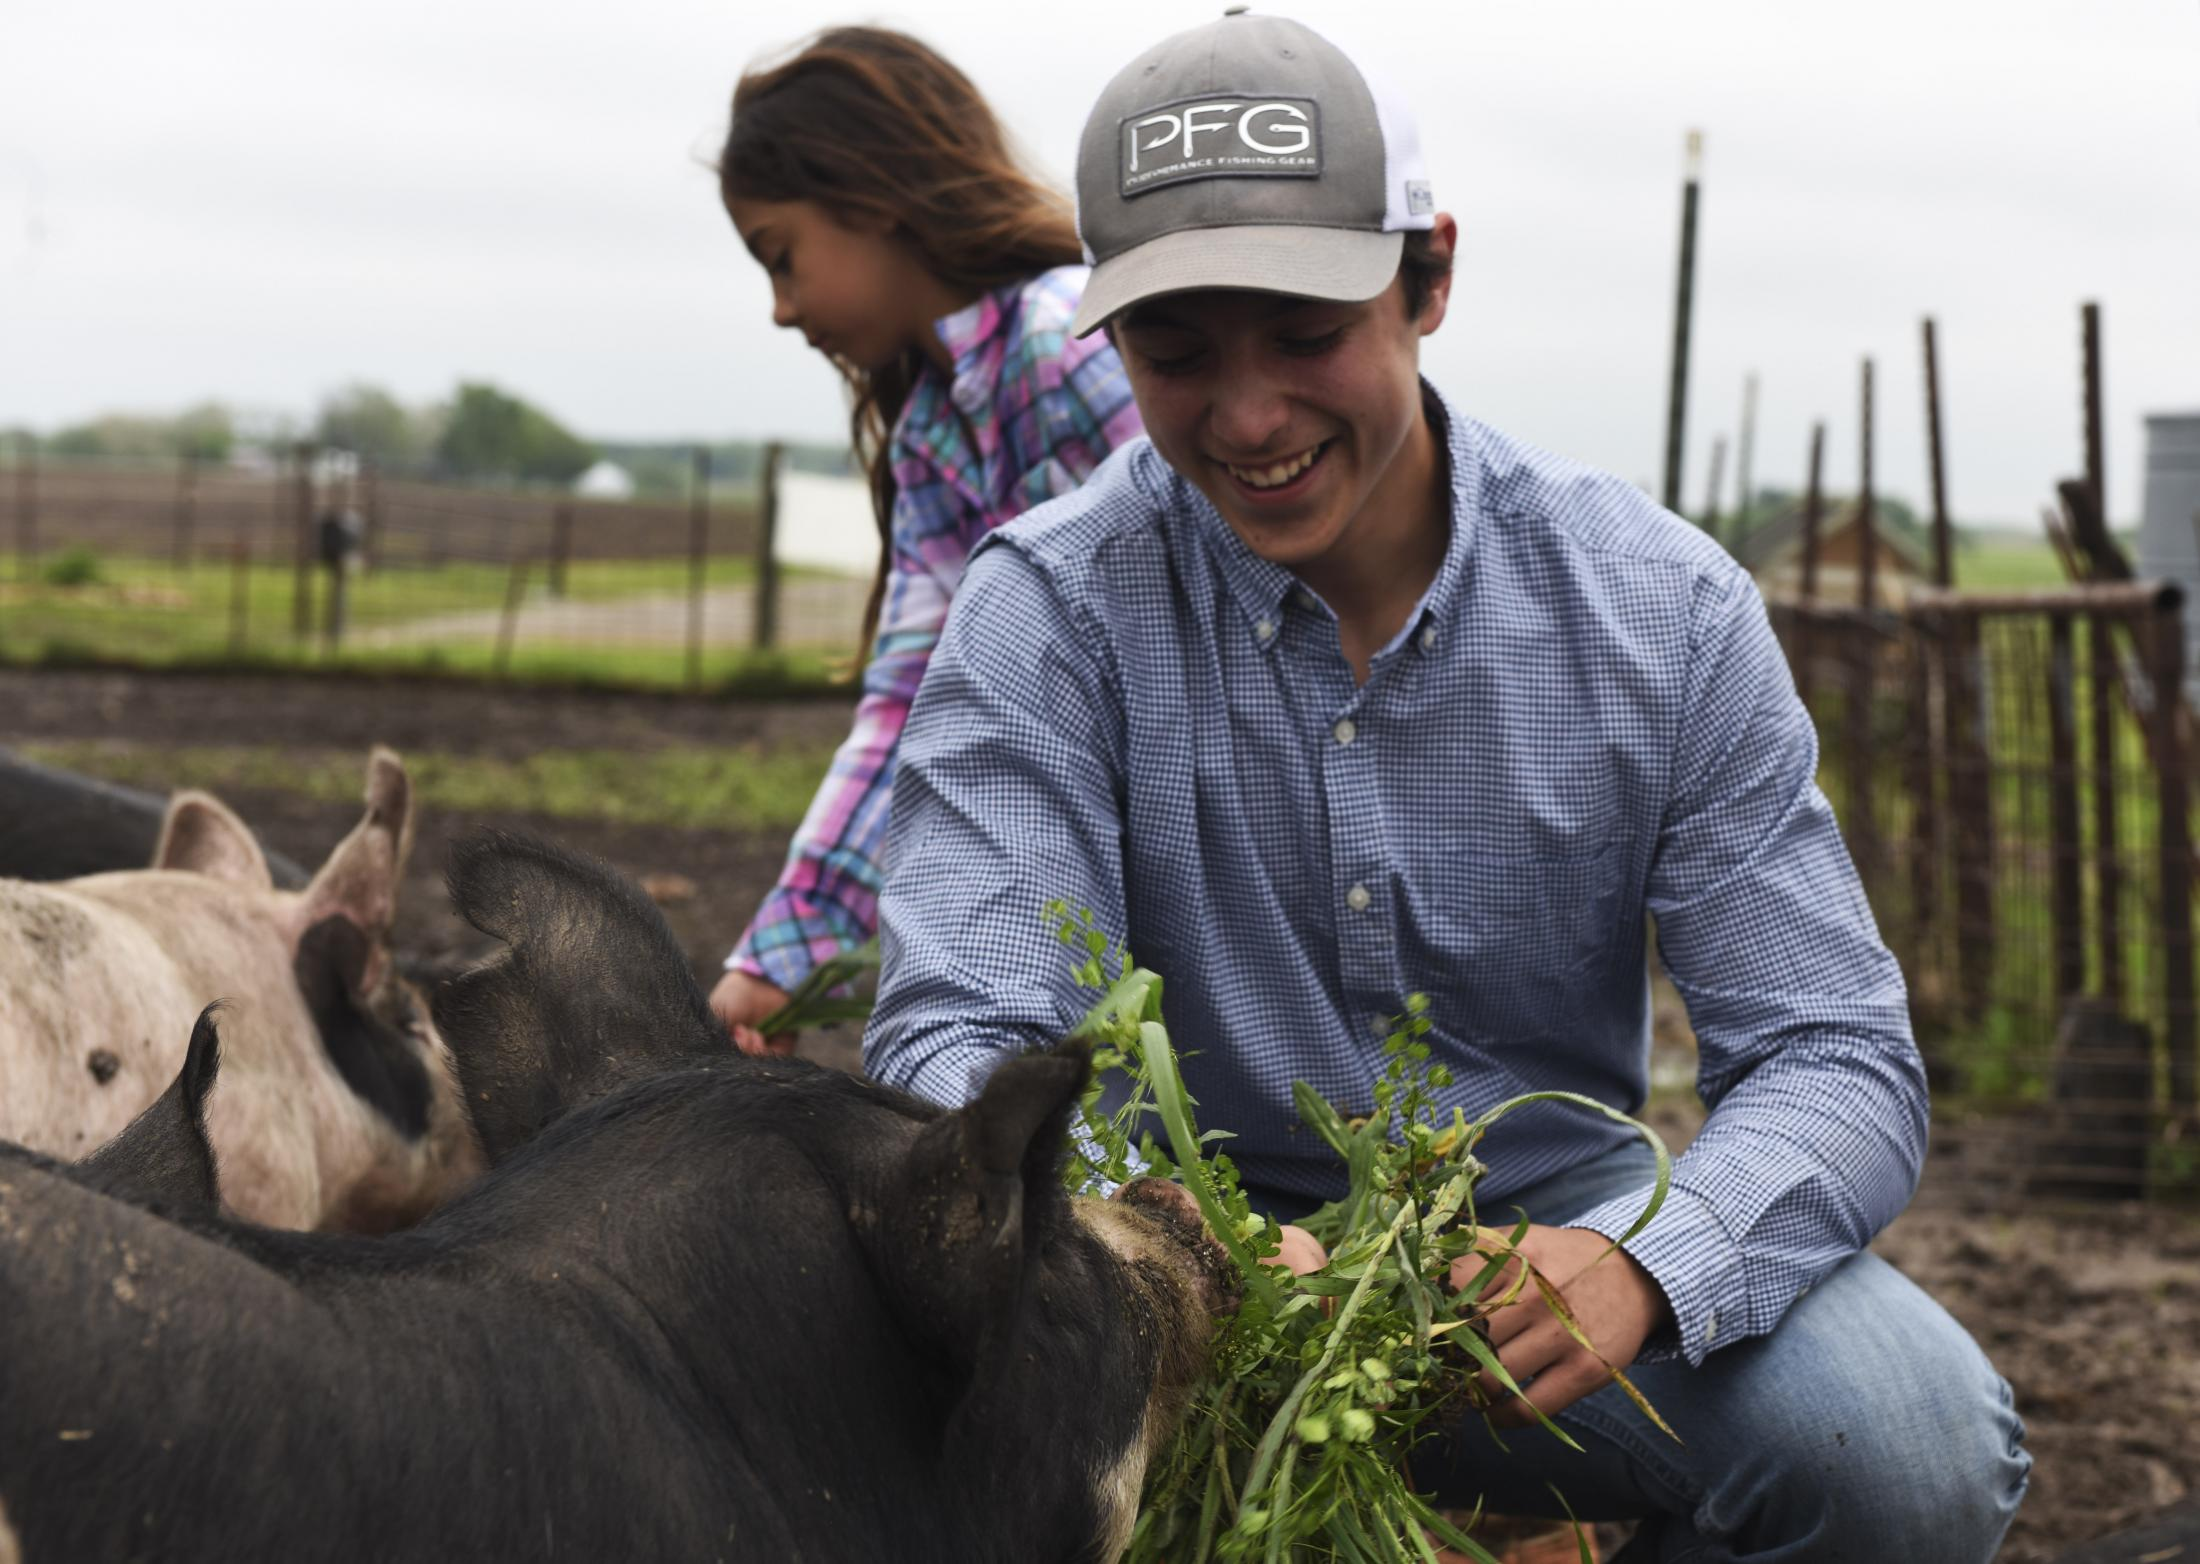 "Cody Williams, 15, feeds grass to some hogs on Tuesday, May 19, 2020, at the community hog farm in Clarksburg, Missouri. While Cody and his family collectively share responsibilities of the land with community members, two other local absentee landowners have sold out their land to CAFOs that could pollute the rest of the community's water supply and livestock. The two landowners are the uncles to Fred Williams, Cody's father. ""It is a real shame that they care more about money than they do about the welfare of the people closest to us,"" said Susan Williams, 67, mother of Fred Williams."